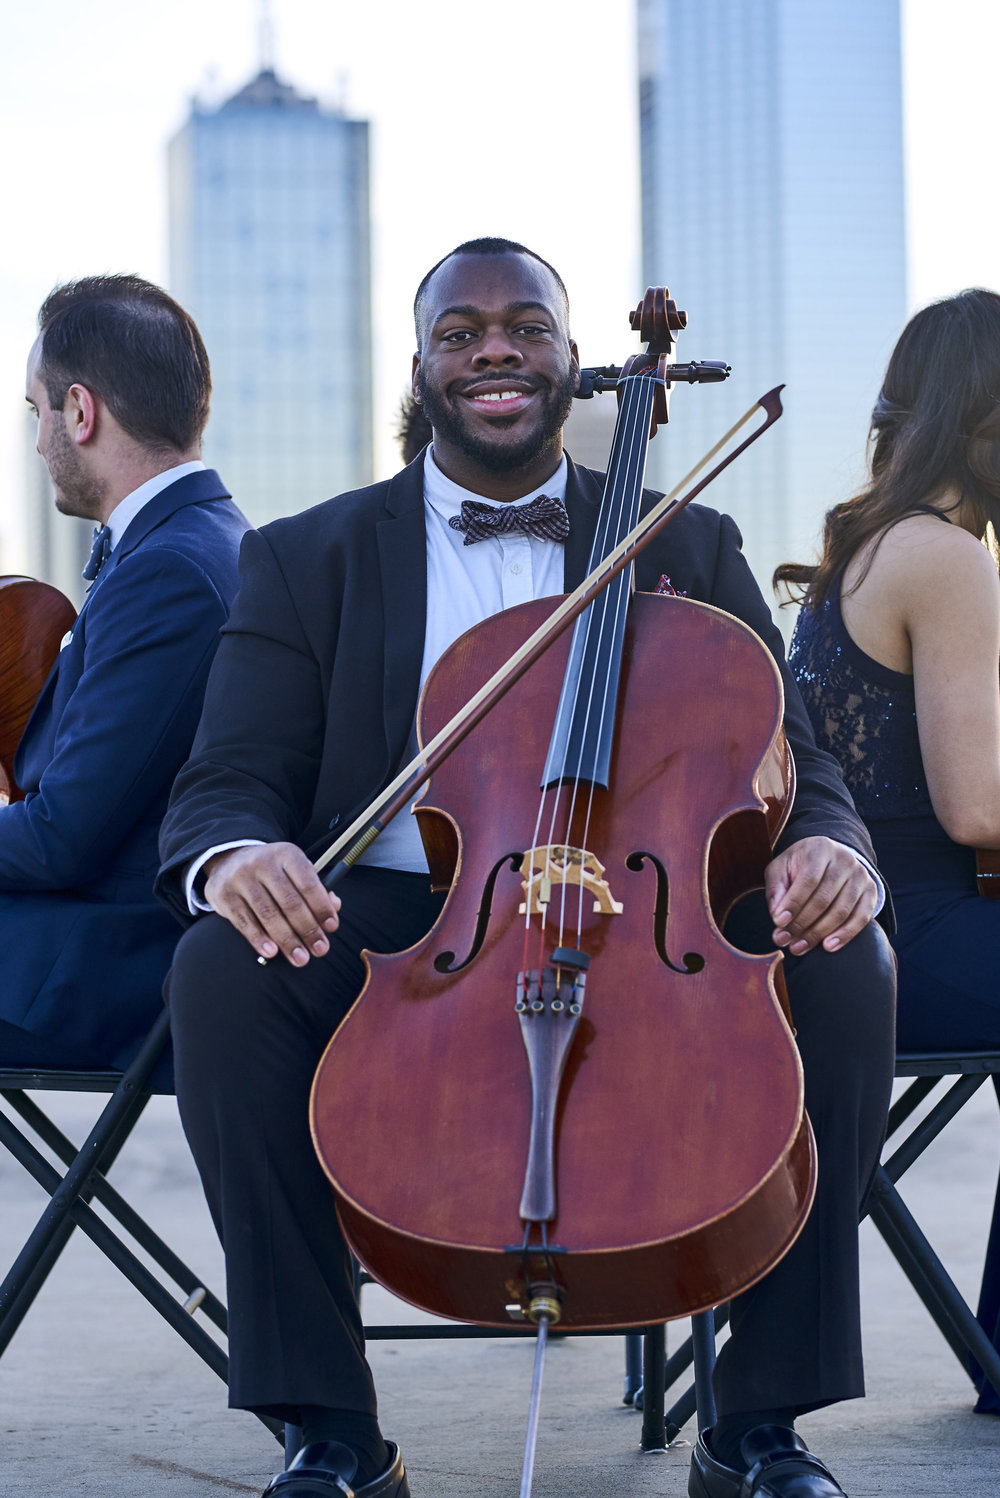 BYRON HOGAN    Byron Hogan  is a cellist and arranger from Lakeland, Florida. From 2010 to 2012, he was an Artist in Residence at USF as a member of the President's Piano Trio. He has played in ensembles such as the Ocala Symphony Orchestra, The Osud trio, The St. Petersburg Opera, and the Miami ballet as well as performing as soloist with The Imperial Symphony and the Bogus Pomp Orchestra. Byron has recently taught master classes in Florida in addition to performing throughout the United States and Canada. He holds a Bachelors of Music from Florida Southern College where he studied under Anne Parrette and Jeffrey Lang, a Masters in Music Performance and Chamber Music Performance from the University of South Florida where he studied under Scott Kluksdahl, a Graduate Performance Diploma from The Boston Conservatory under Rhonda Rider, and an Artist Diploma from the John J. Cali School of Music at Montclair State University under Nicholas Tzavaras as part of the Graduate String Quartet in Residence program.